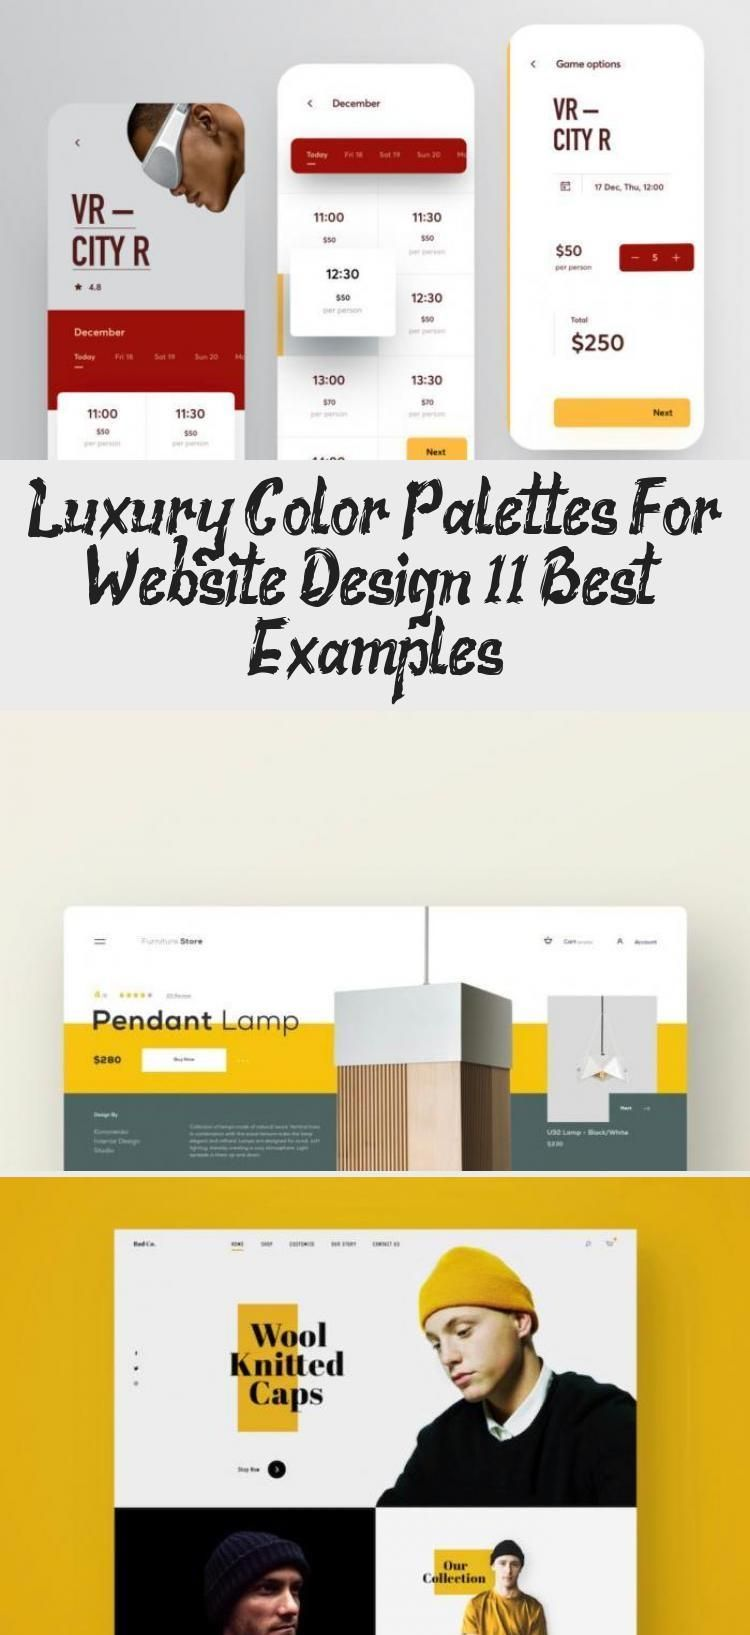 Luxury Color Palettes For Website Design 11 Best Examples Design Color Design Exampl In 2020 What Is Fashion Designing Identity Design Logo Free Web Design